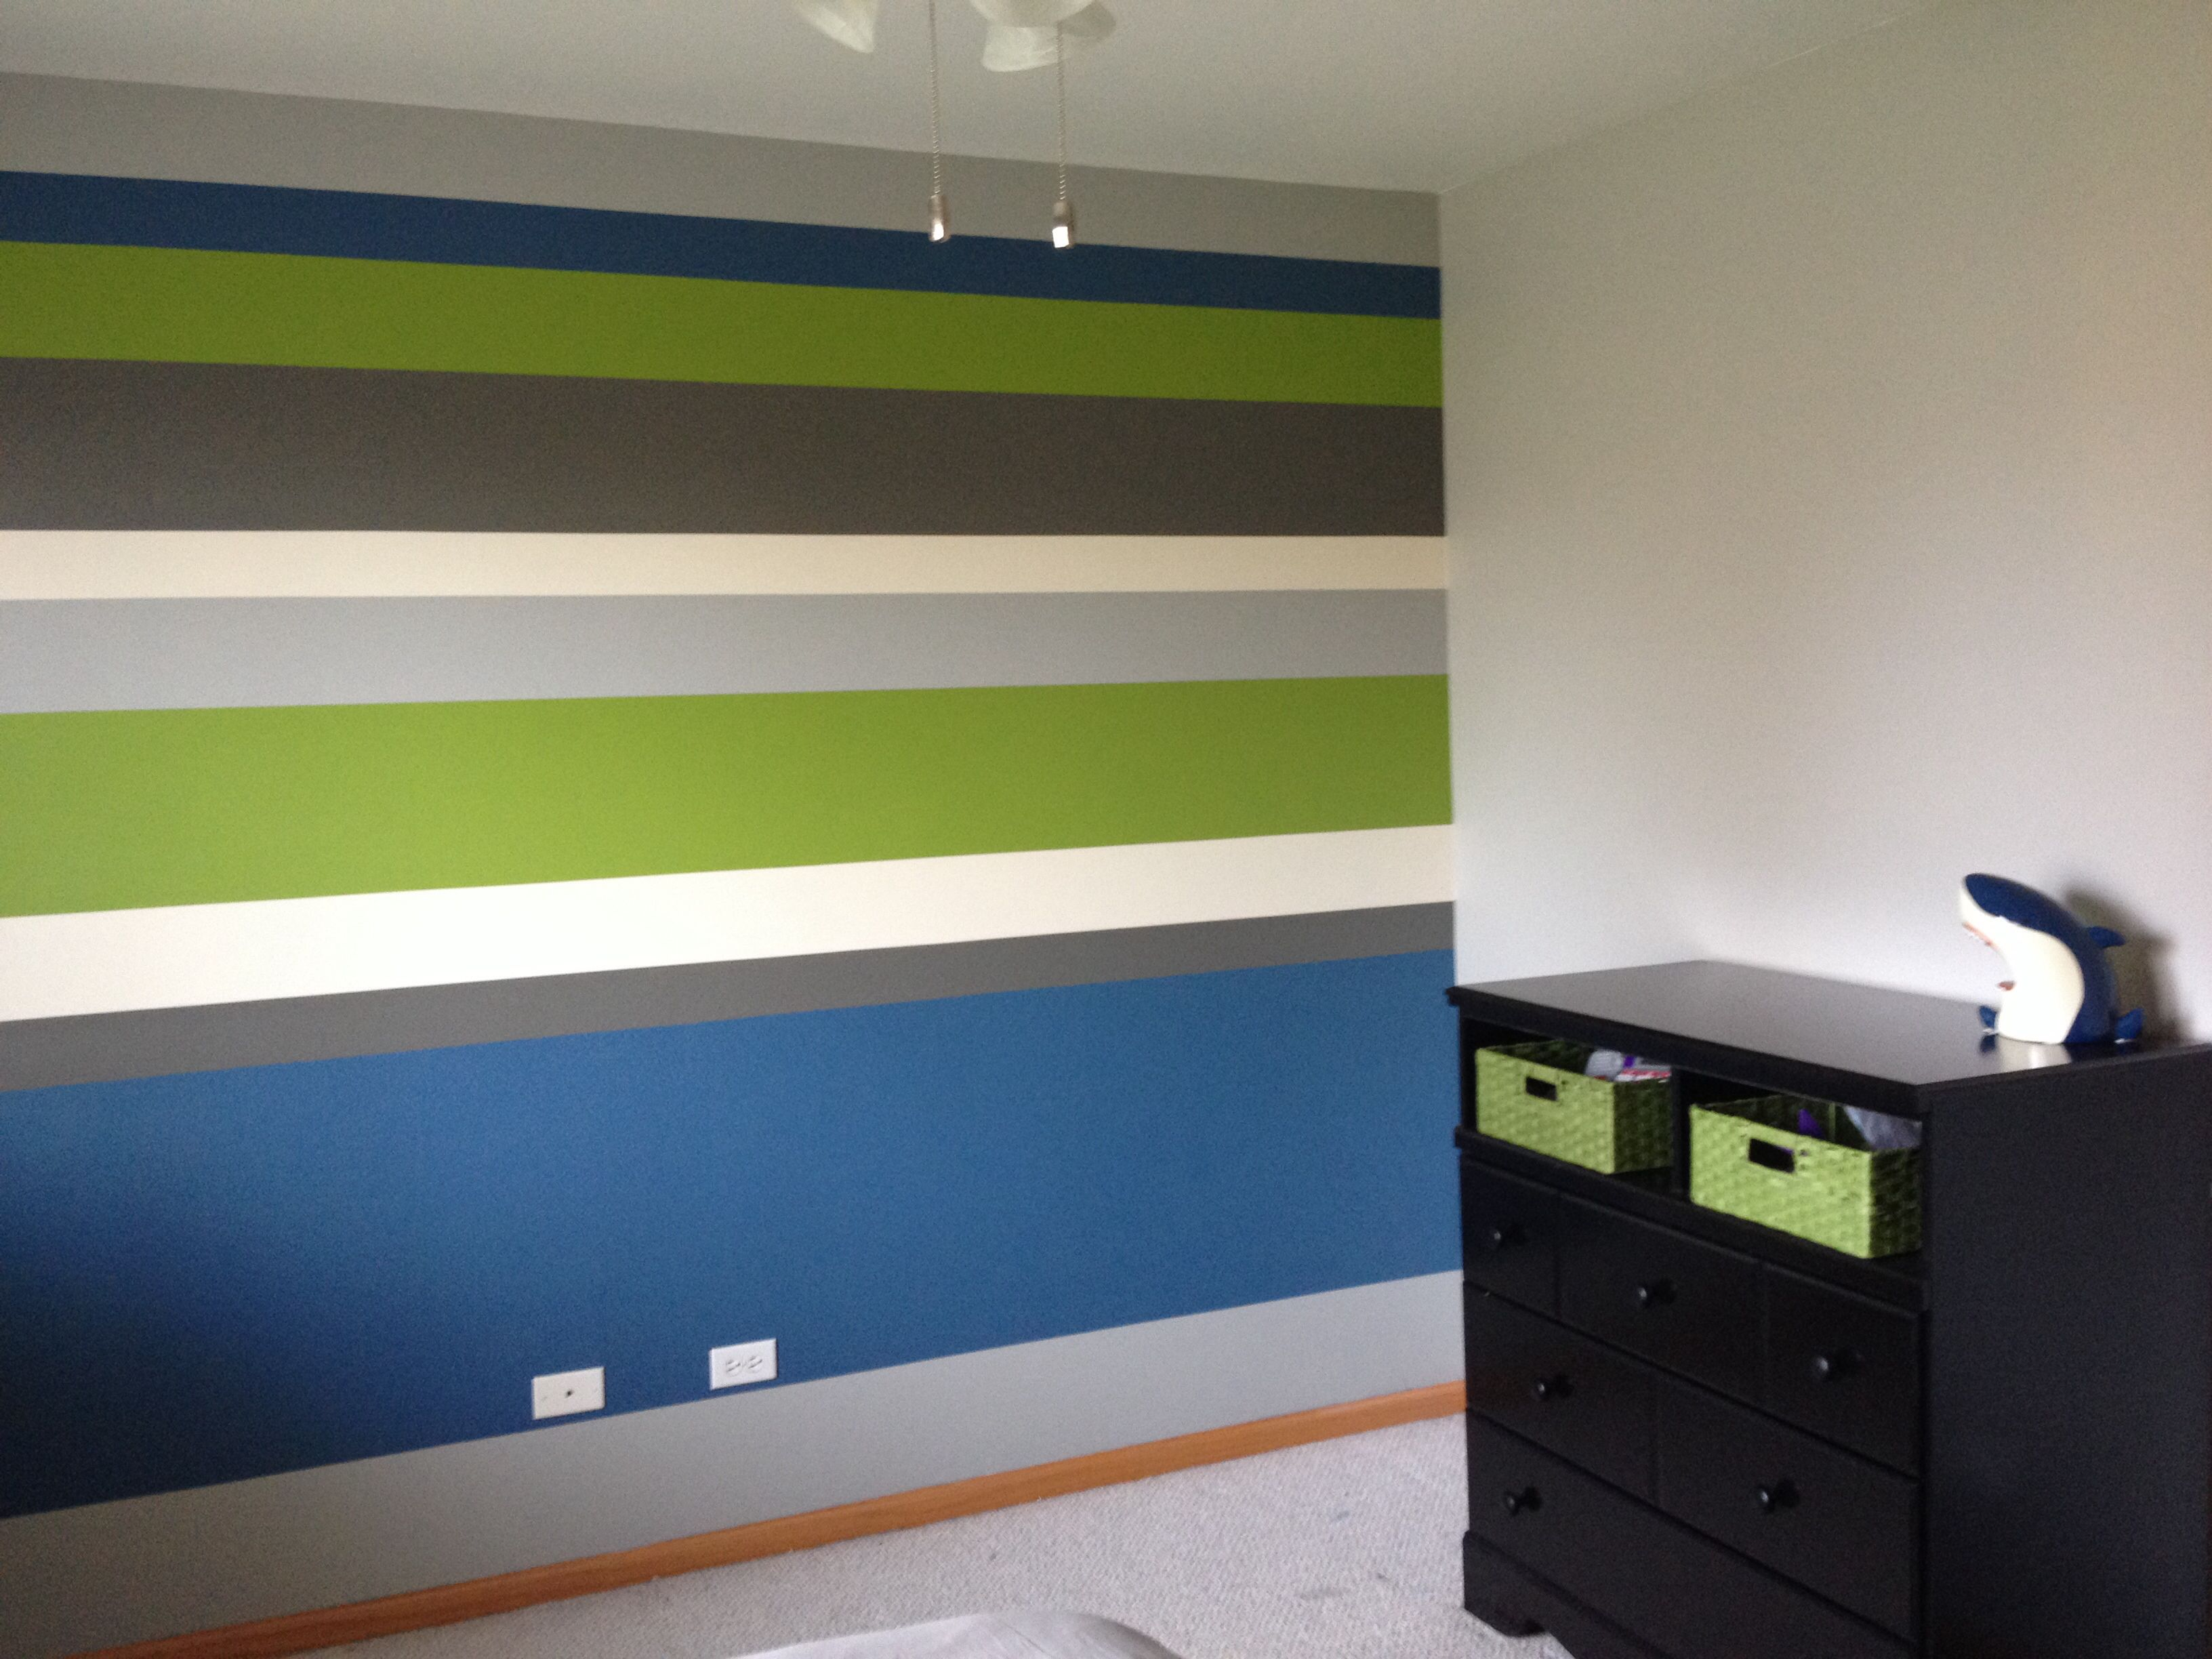 Pin By Julisia Alexander On My Pins Boys Bedroom Green Boys Bedroom Paint Striped Accent Walls